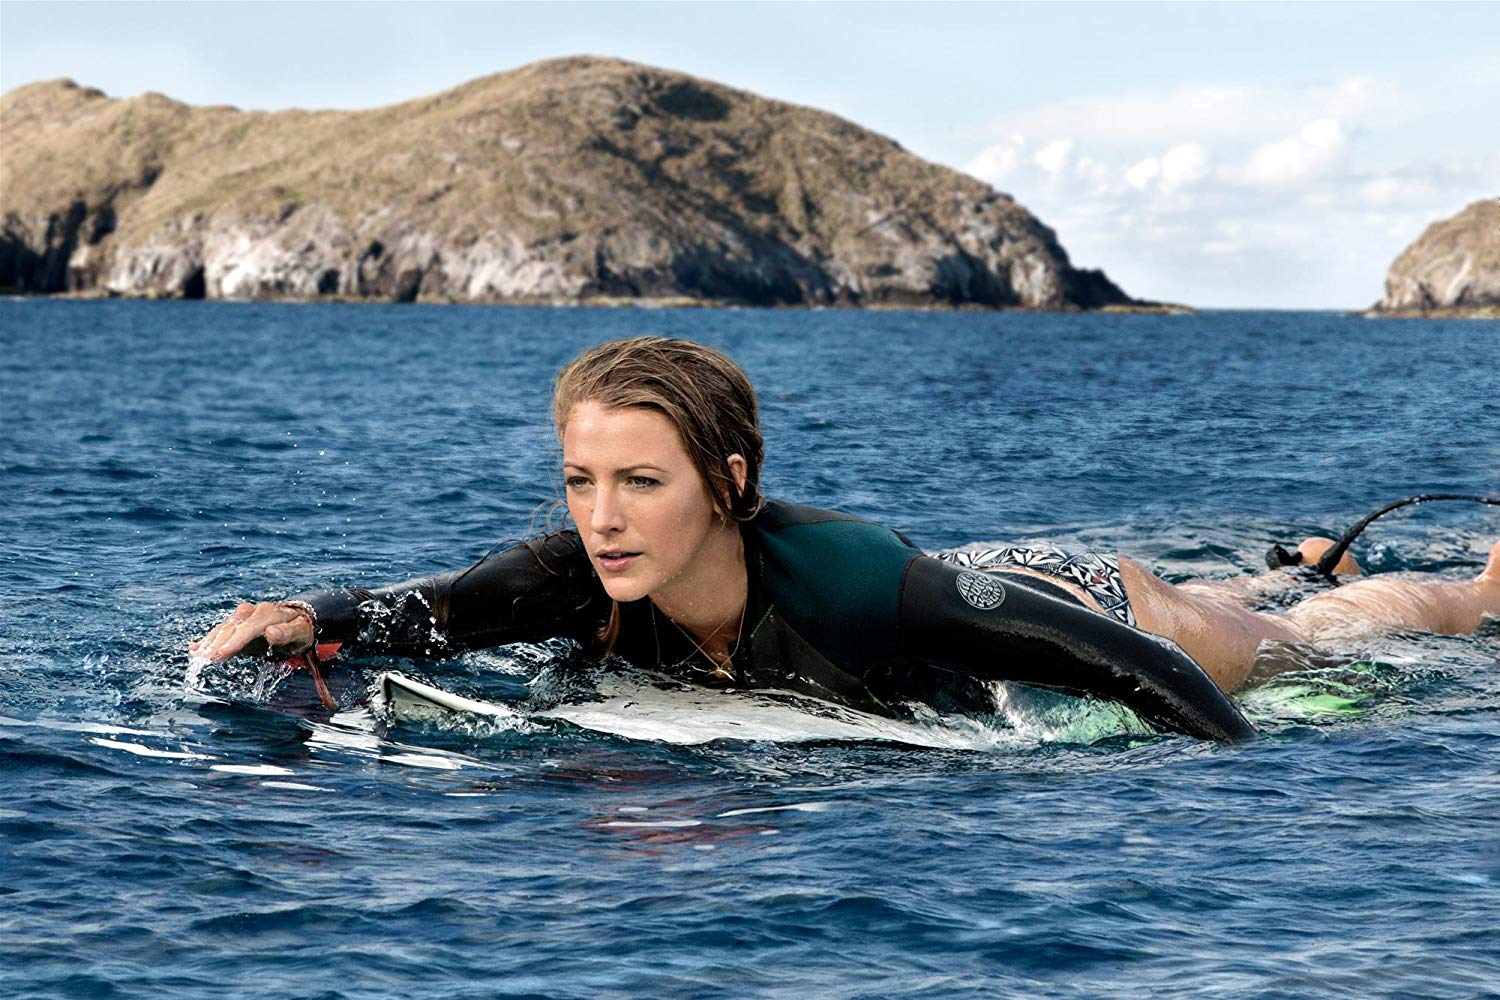 Blake Lively goes surfing in The Shallows (2016)